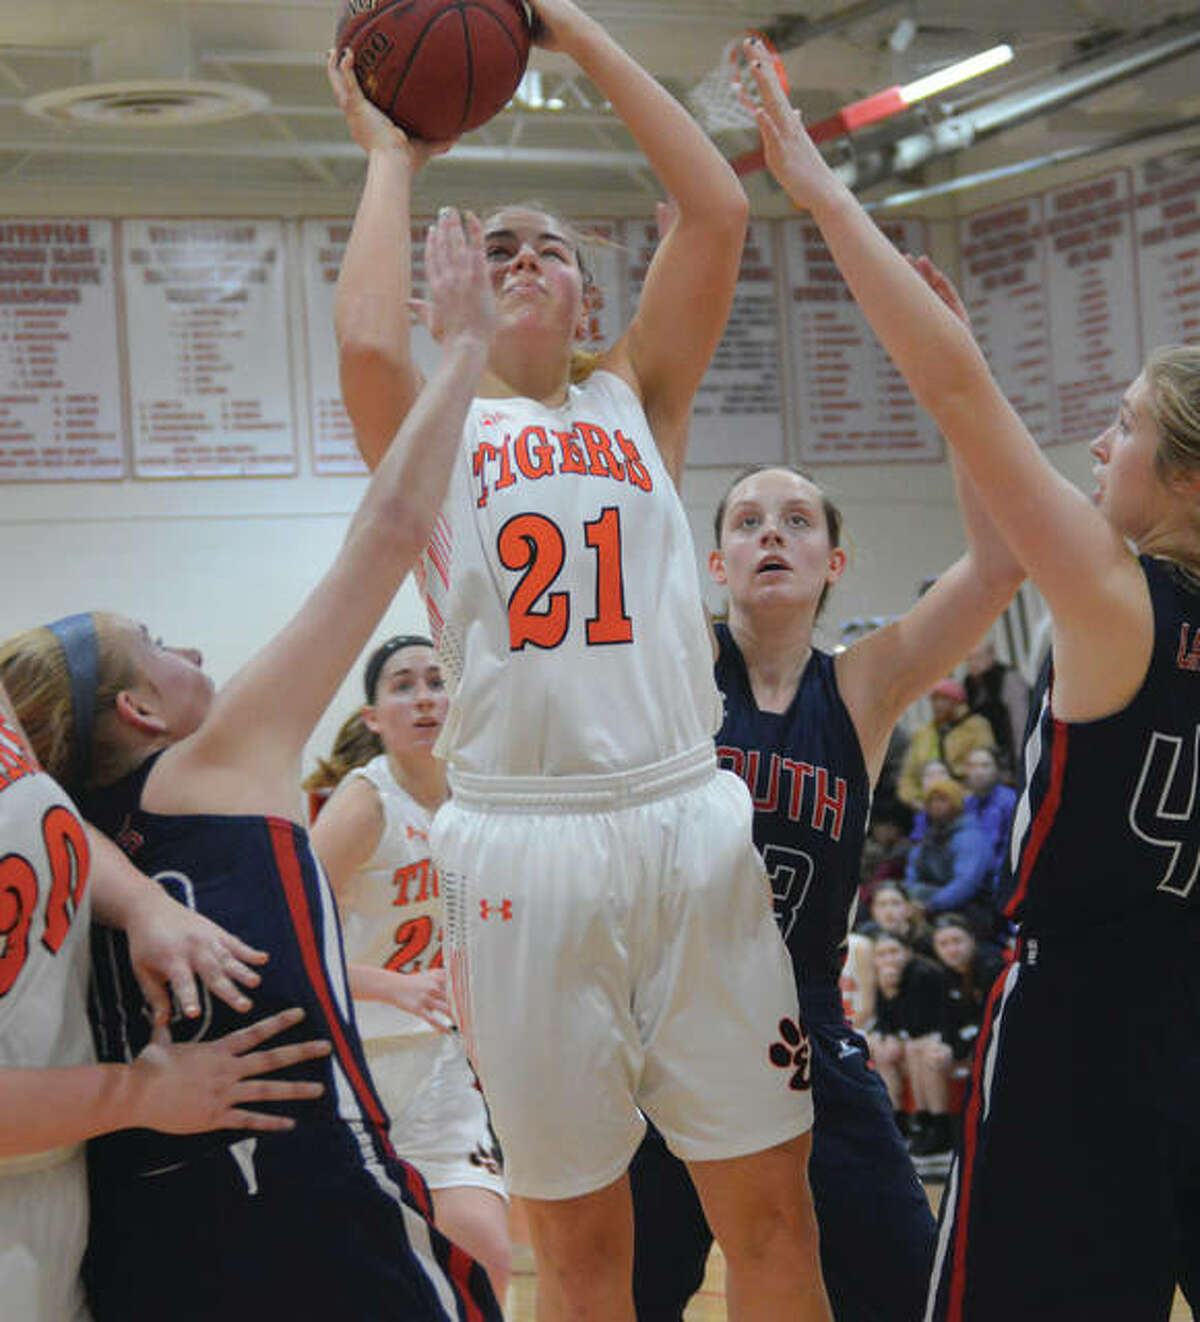 Edwardsville's Rachel Pranger (21) goes up in traffic for a shot during a first-round game Saturday against Parkway South in the Visitation Tournament in St. Louis. The Tigers were back at Viz on Tuesday and got 16 points in a 61-23 quarterfinal victory over Washington, Mo.